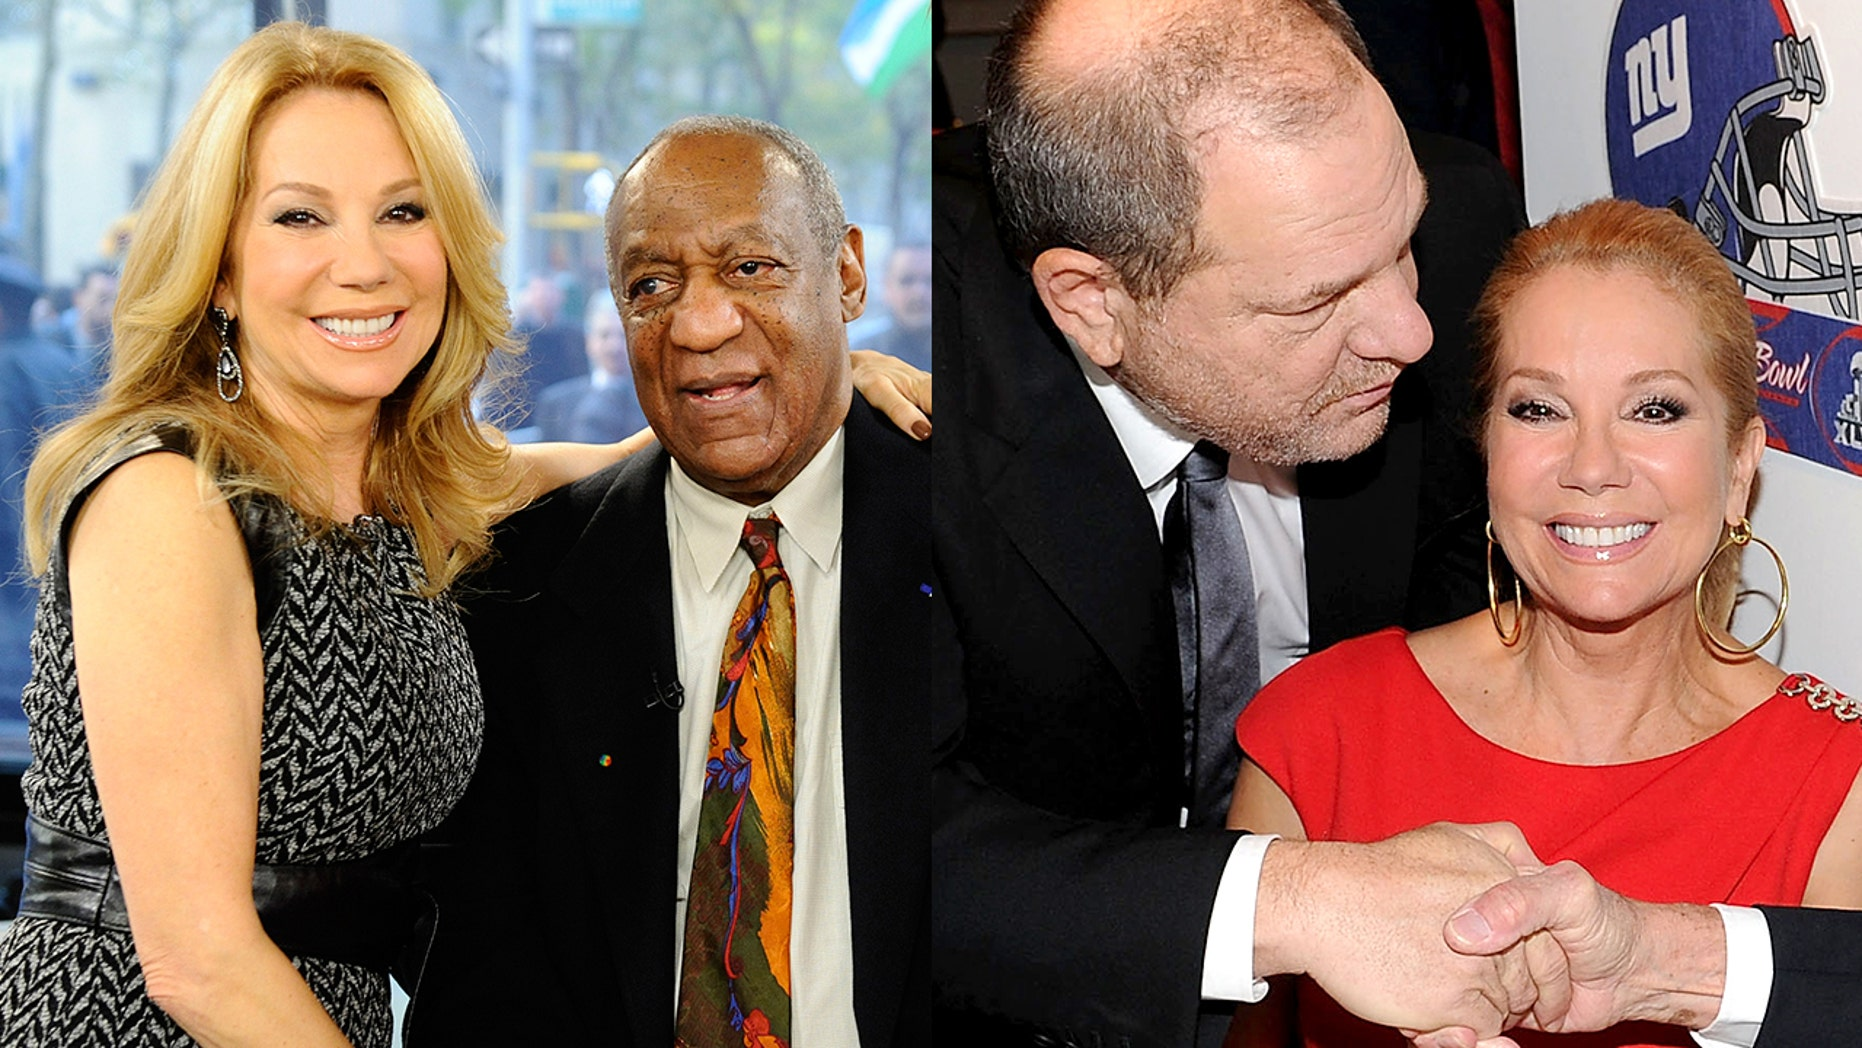 """Kathie Lee Gifford with Bill Cosby on the """"Today"""" show in 2011. The host also posed for a photo with Harvey Weinstein on February 1, 2012."""